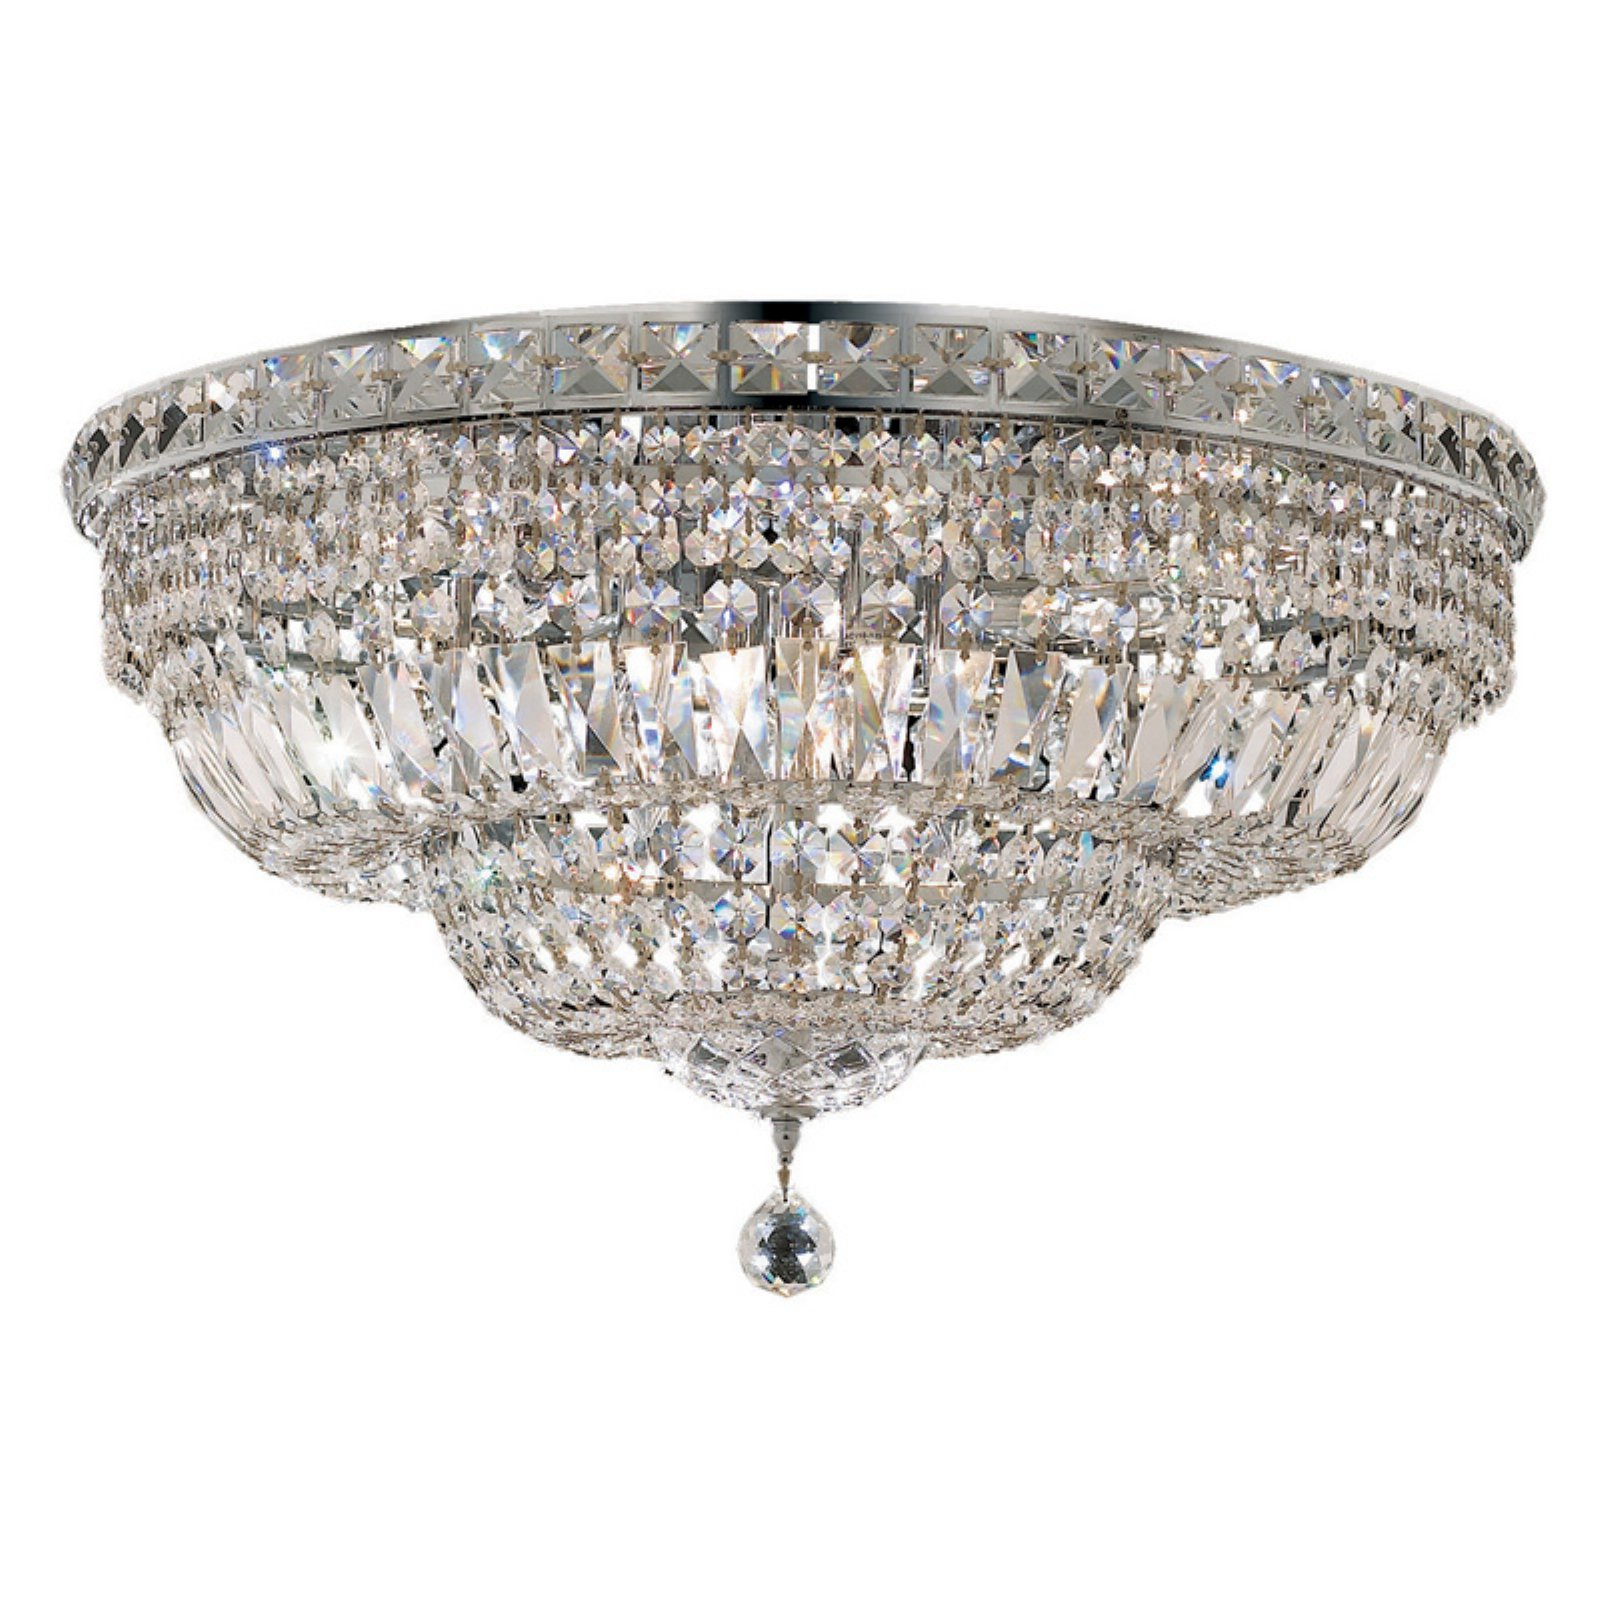 Elegant Lighting Tranquil III 2528 Flush Mount Light